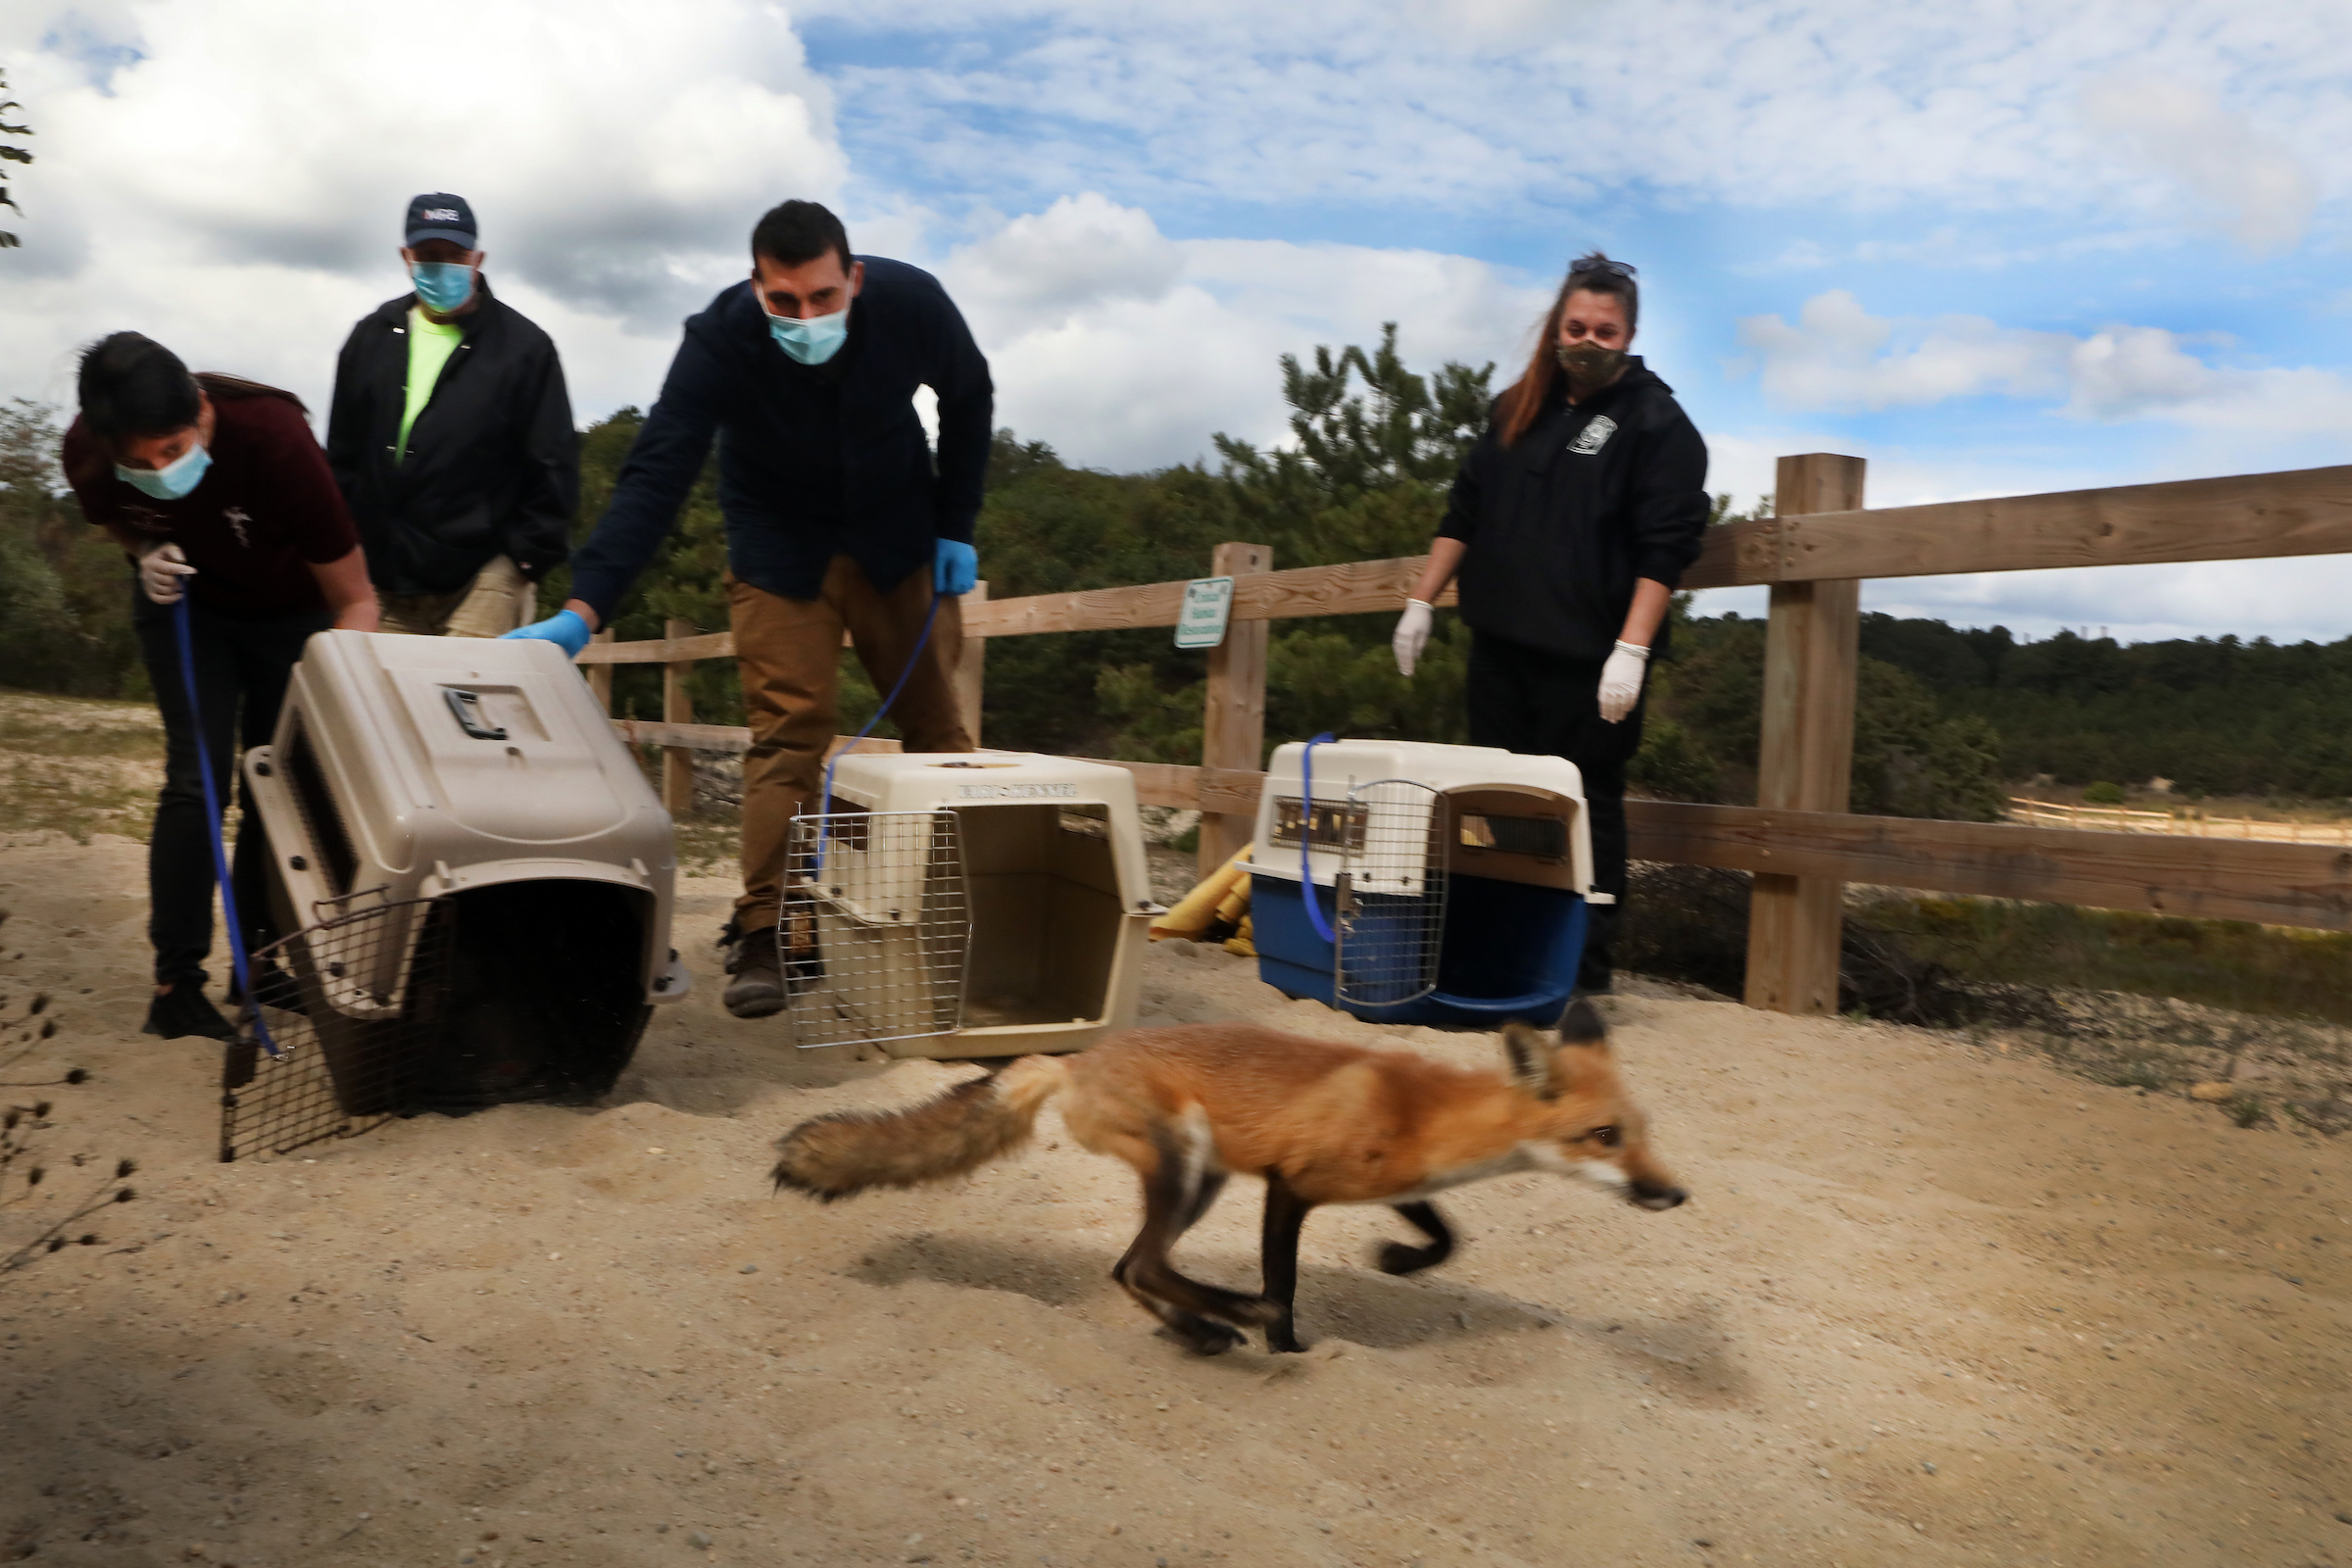 The last of three rehabilitated red foxes is released in the Breivogel Ponds Conservation Area of Falmouth, Massachusetts as wildlife rehabilitators and local officials look on.